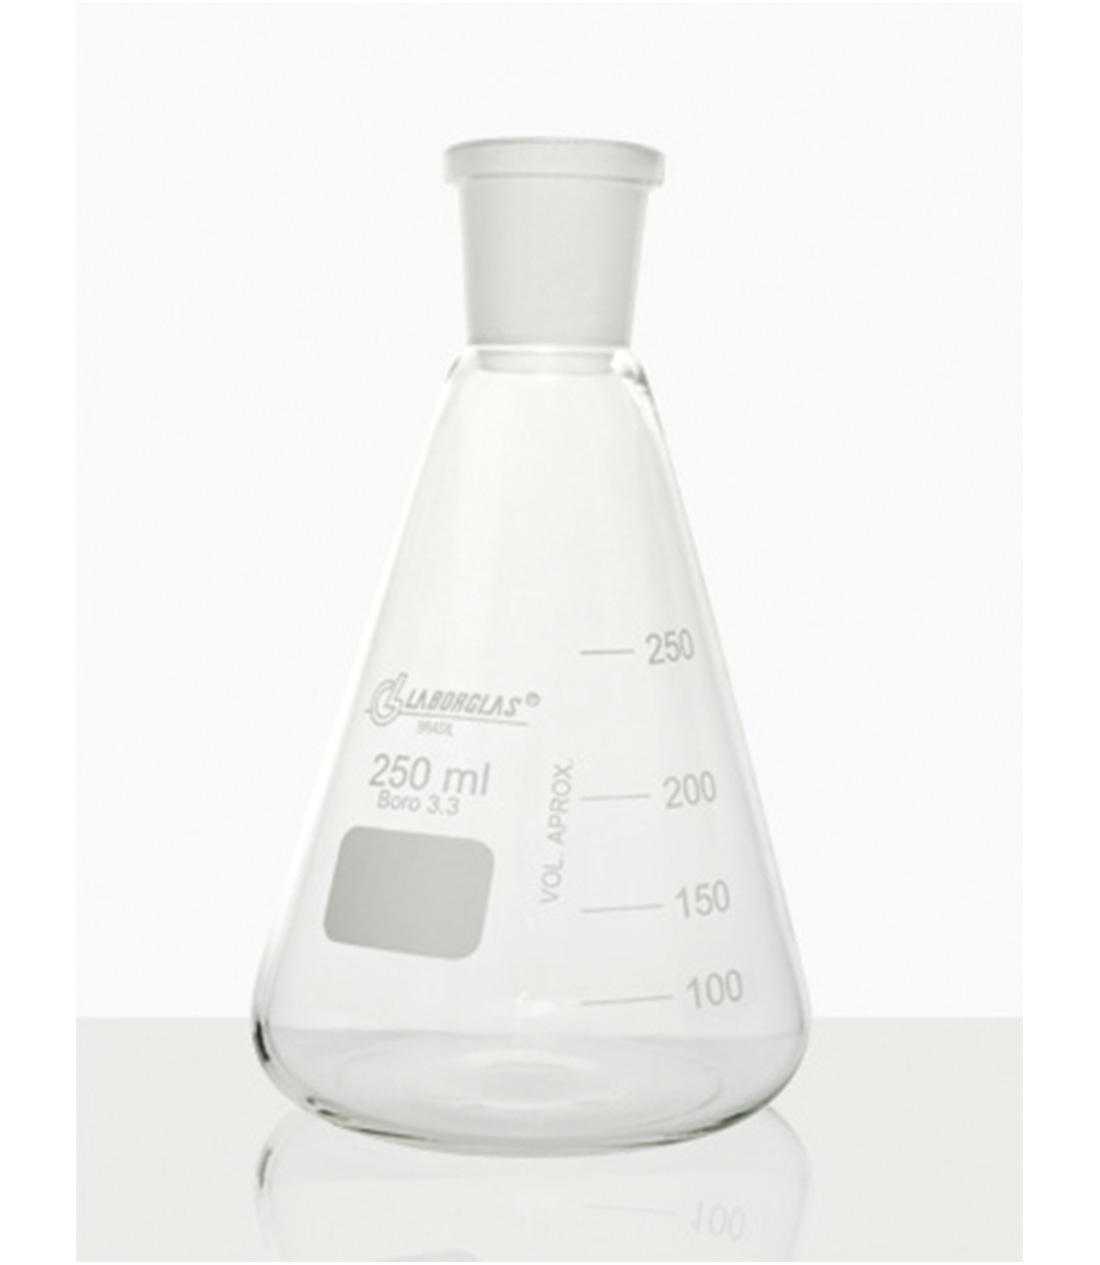 FRASCO ERLENMEYER C/ JUNTA ESM. 500 ML - Laborglas - Cód. 91216441